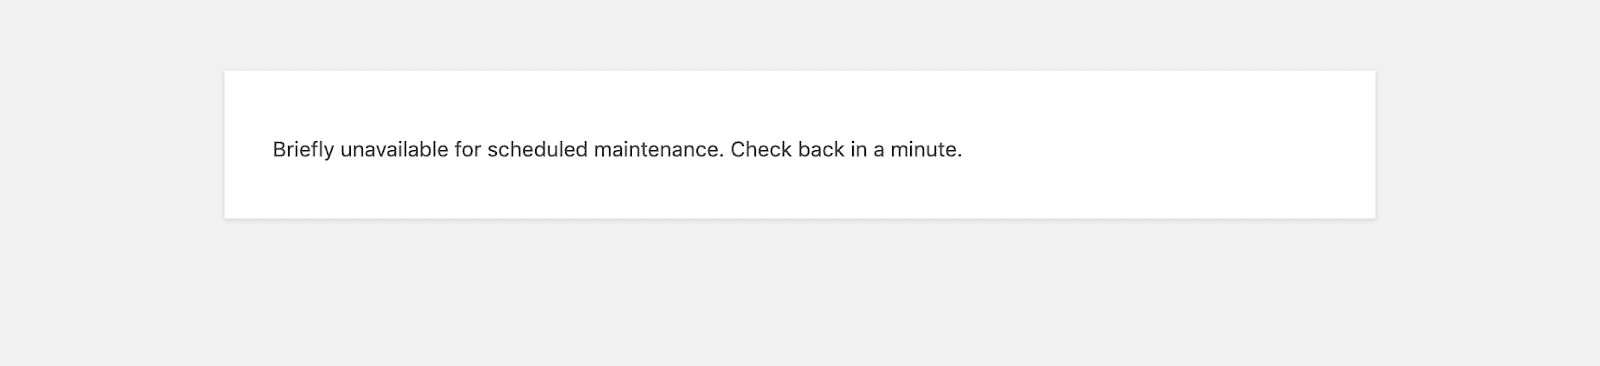 """Il messaggio """"Briefly unavailable for scheduled maintenance"""" in WordPress"""